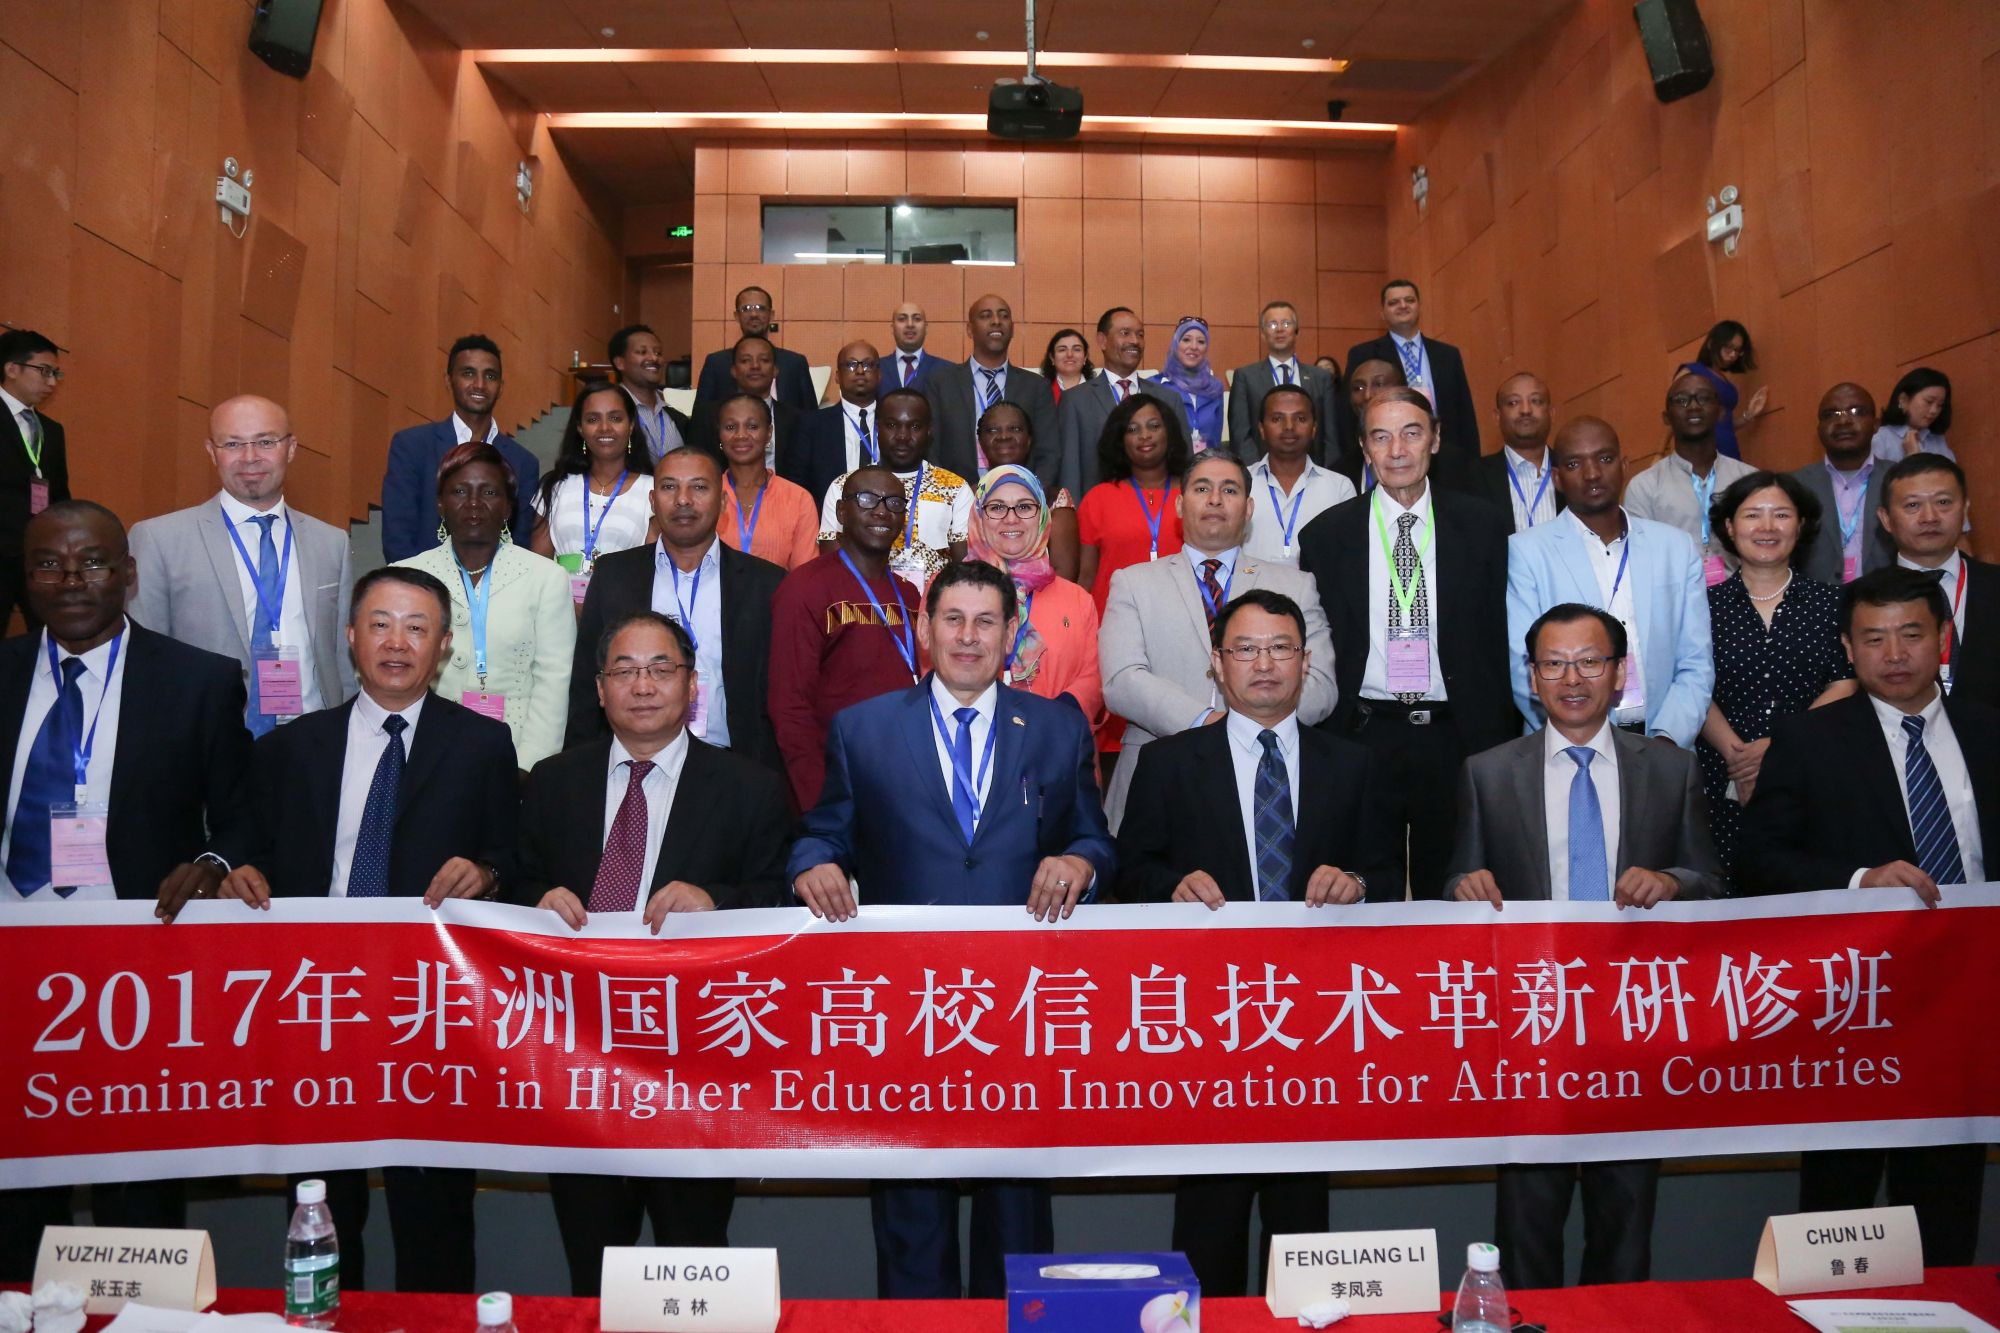 Seminar on ICT in Higher Education Innovation for Asian and African Countries